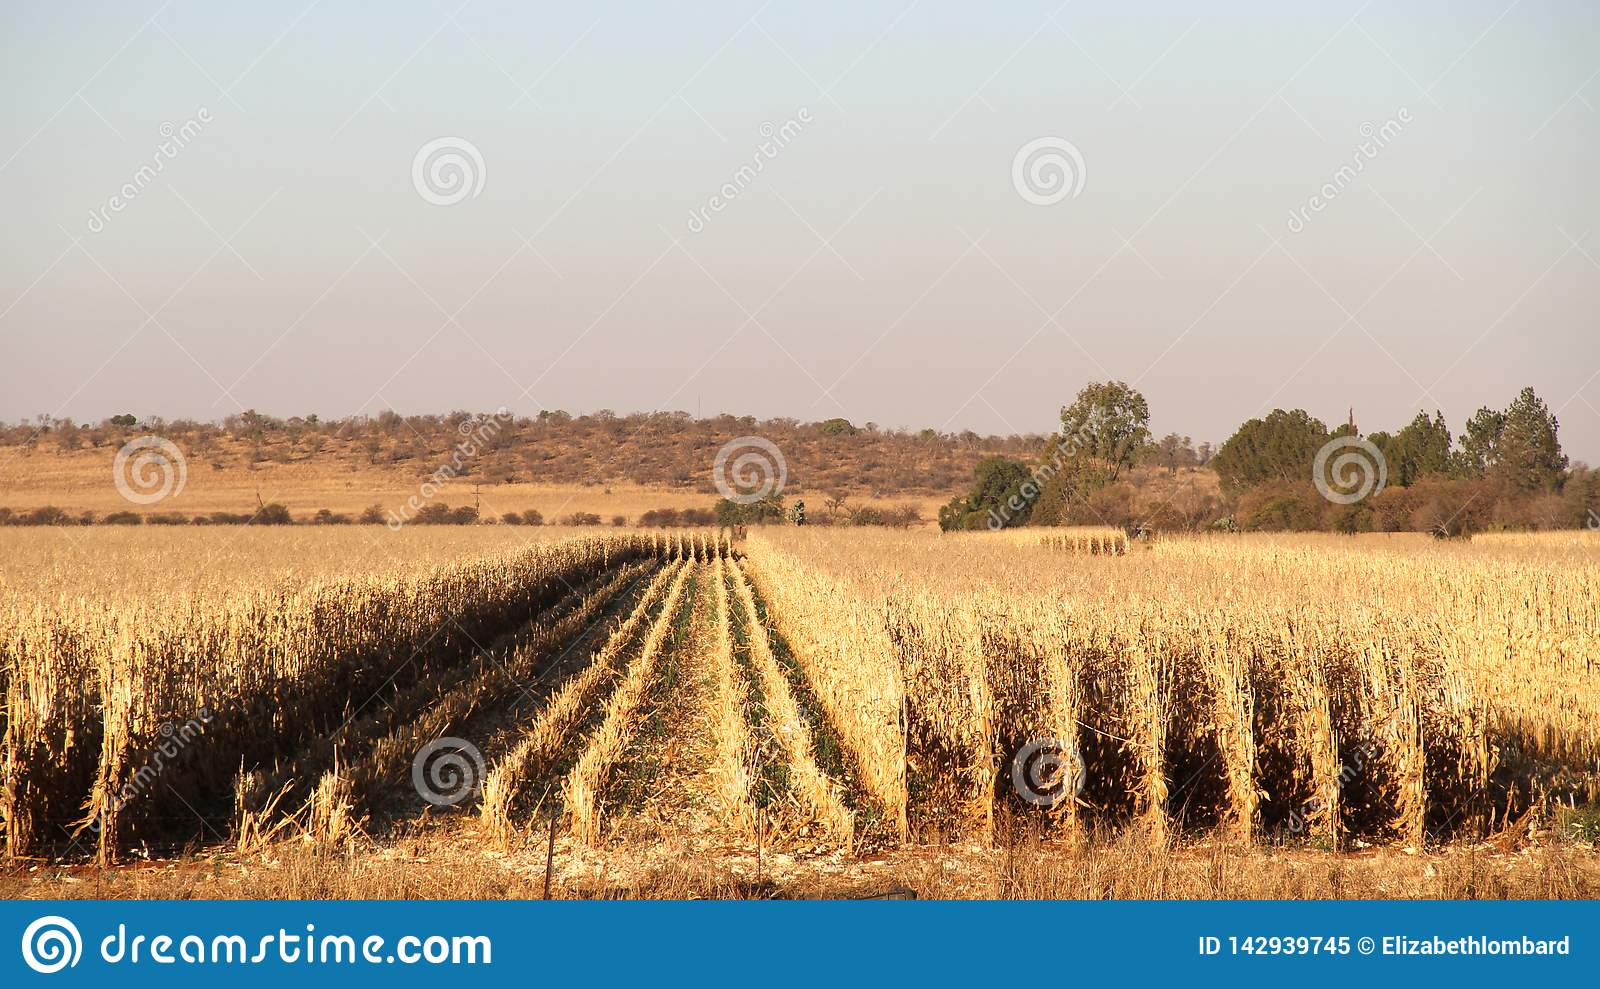 Farm in Potchefstroom, South Africa